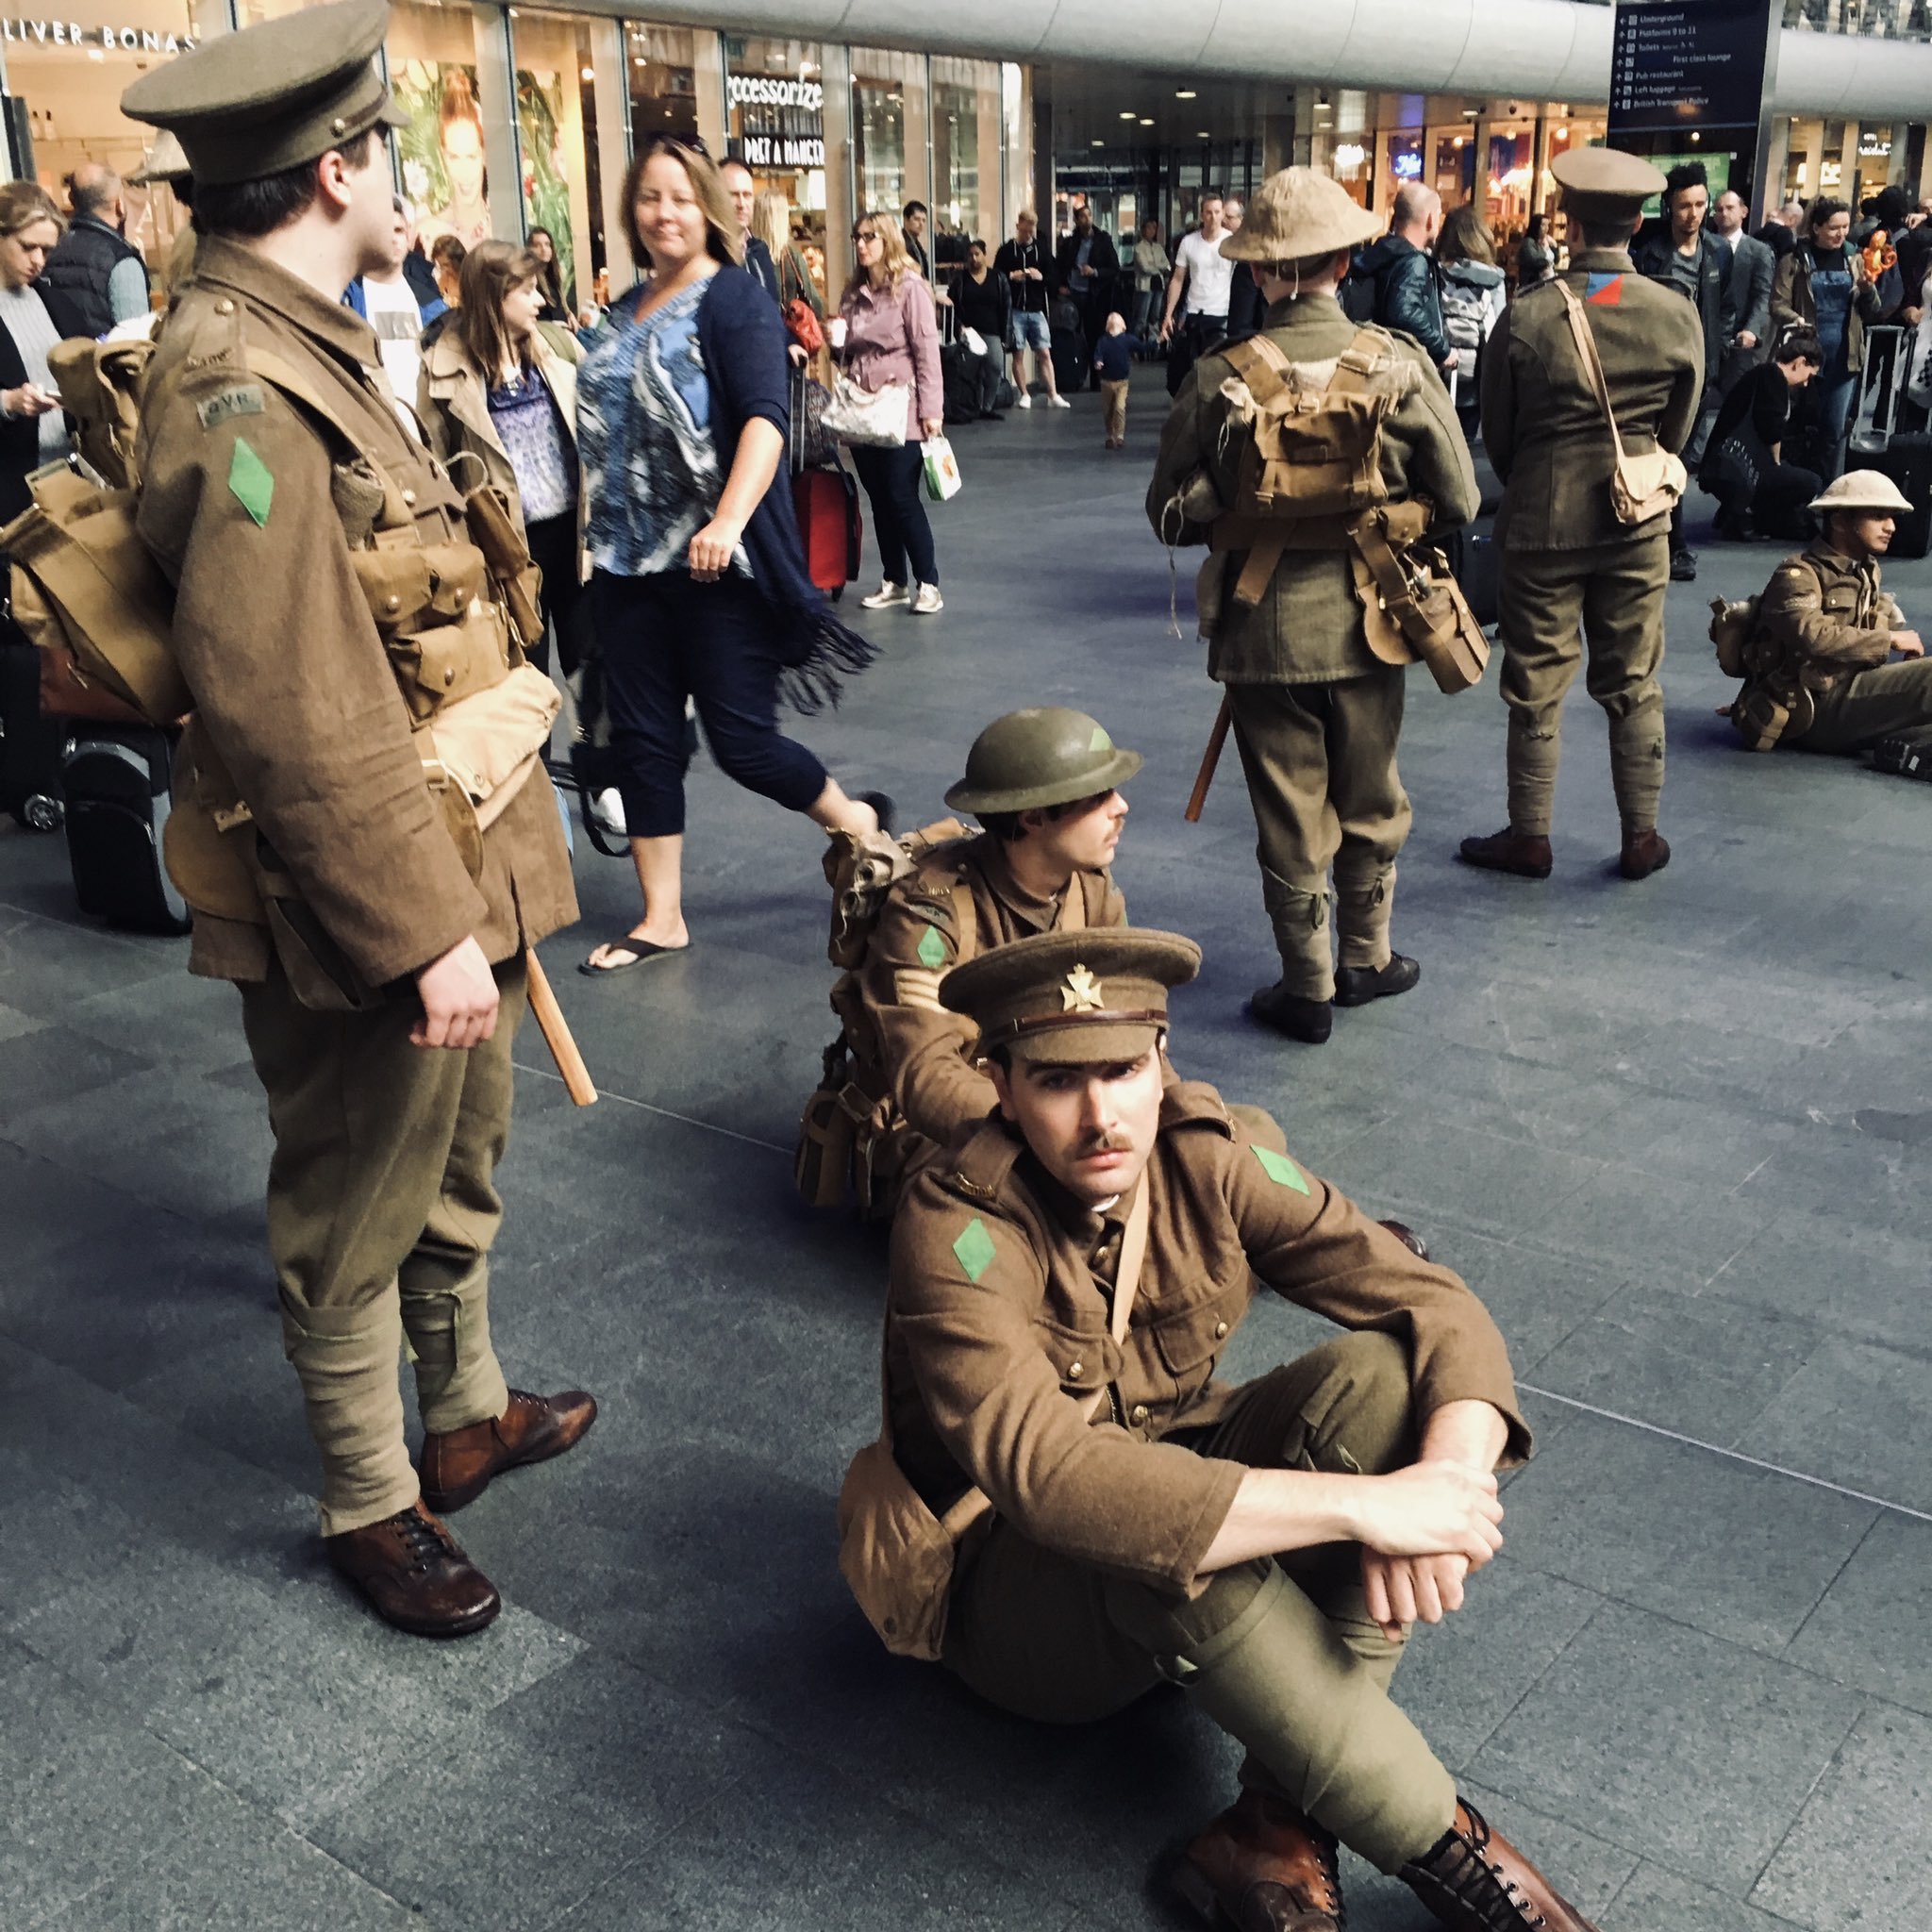 Just thinking about art of commemoration, @1418NOW has been brilliant, from @tompiperdesign & @PaulCumminsMBE poppies to Danny Boyle's beaches & Peter Jackson film. And @jeremydeller's We're Here Because We're Here was one of most moving works (of art, theatre?) I've ever seen https://t.co/pgUA39MlX0